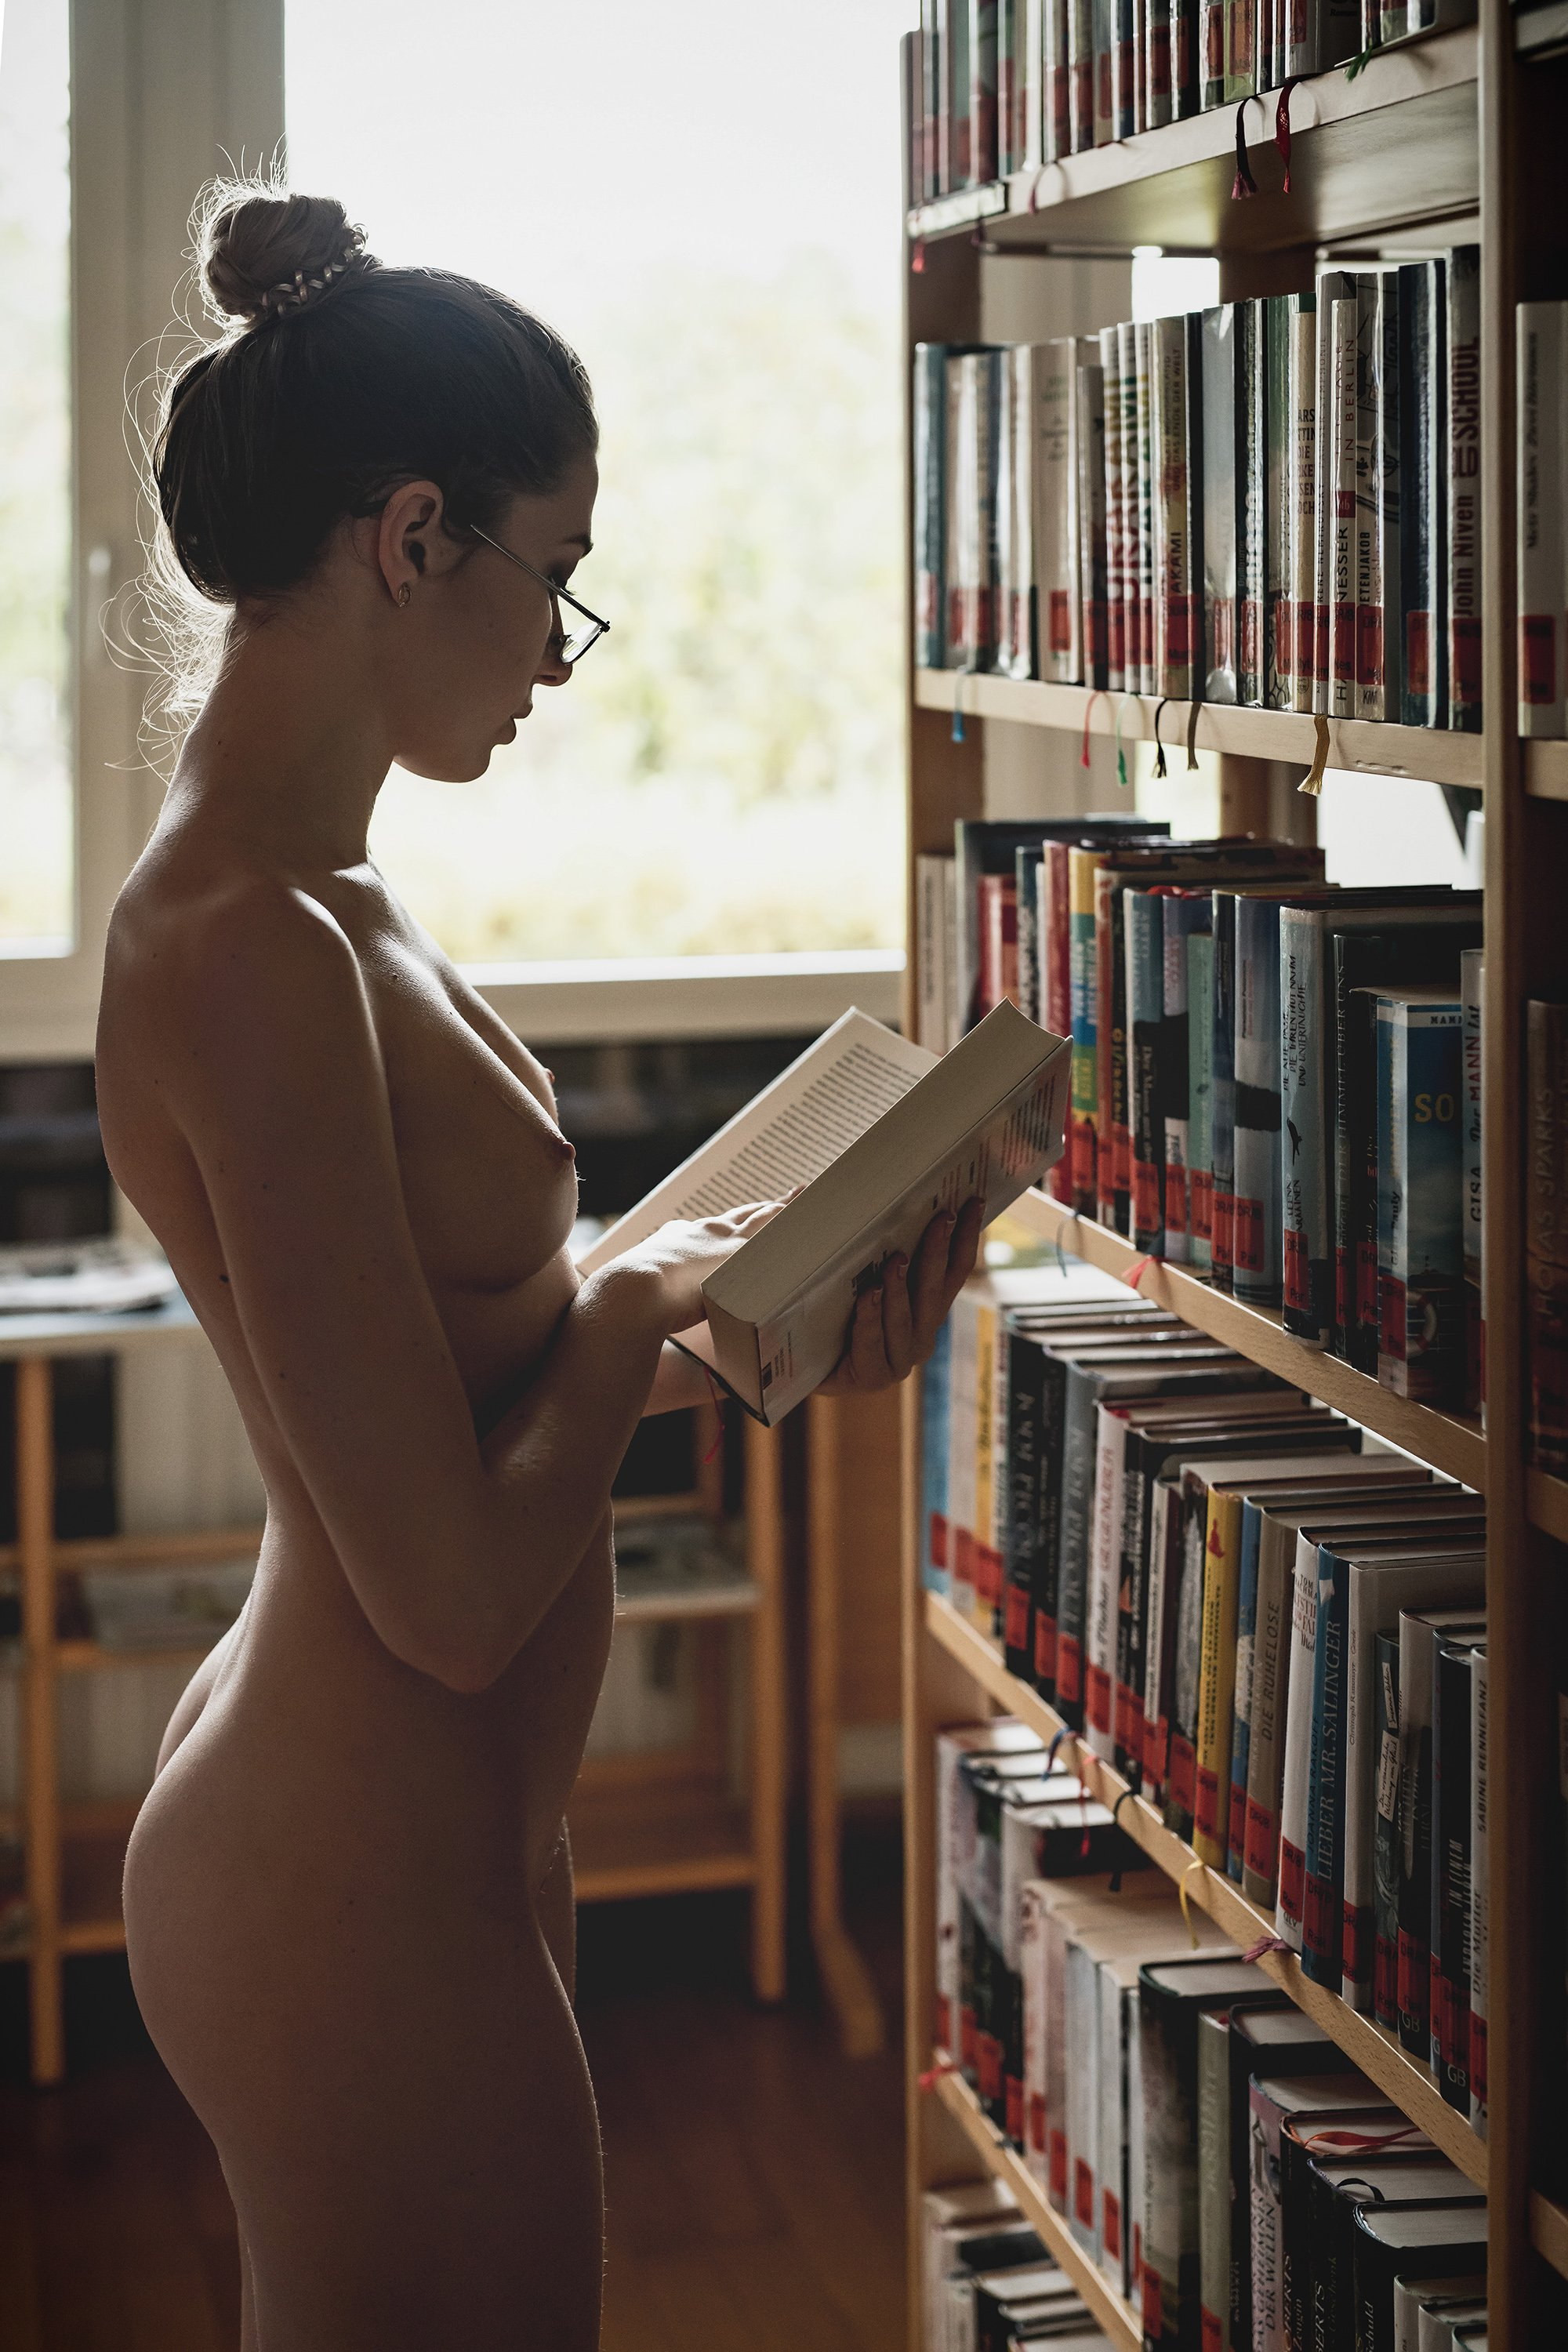 Sexy librarian wearing glasses